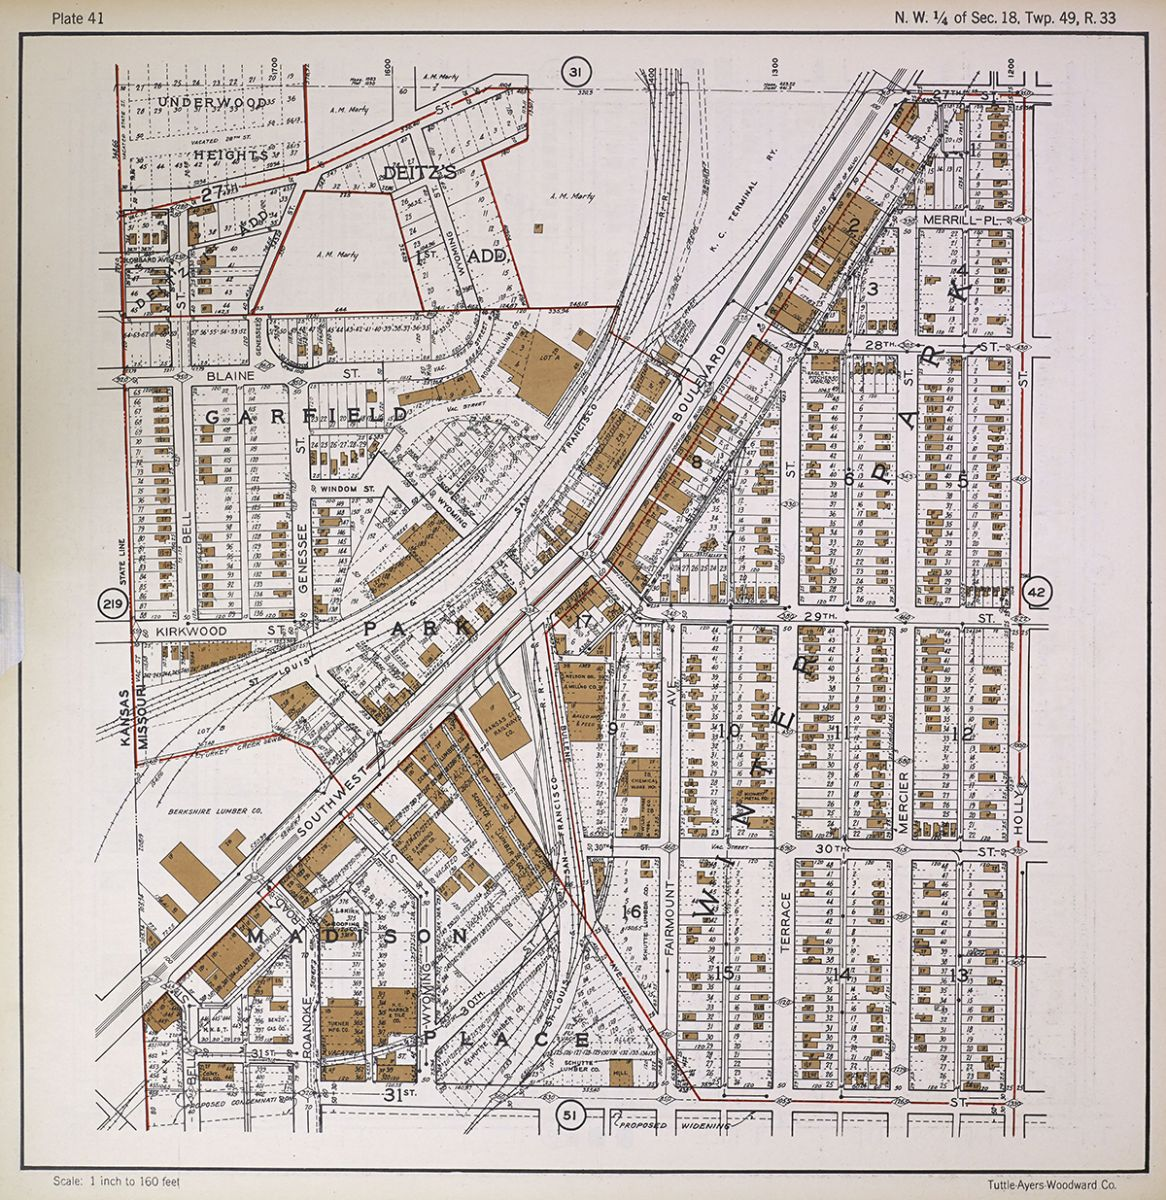 Map portion showing the area around Southwest Boulevard and the Kansas-Missouri border, 1925. Fire Insurance Maps online (FIMo).